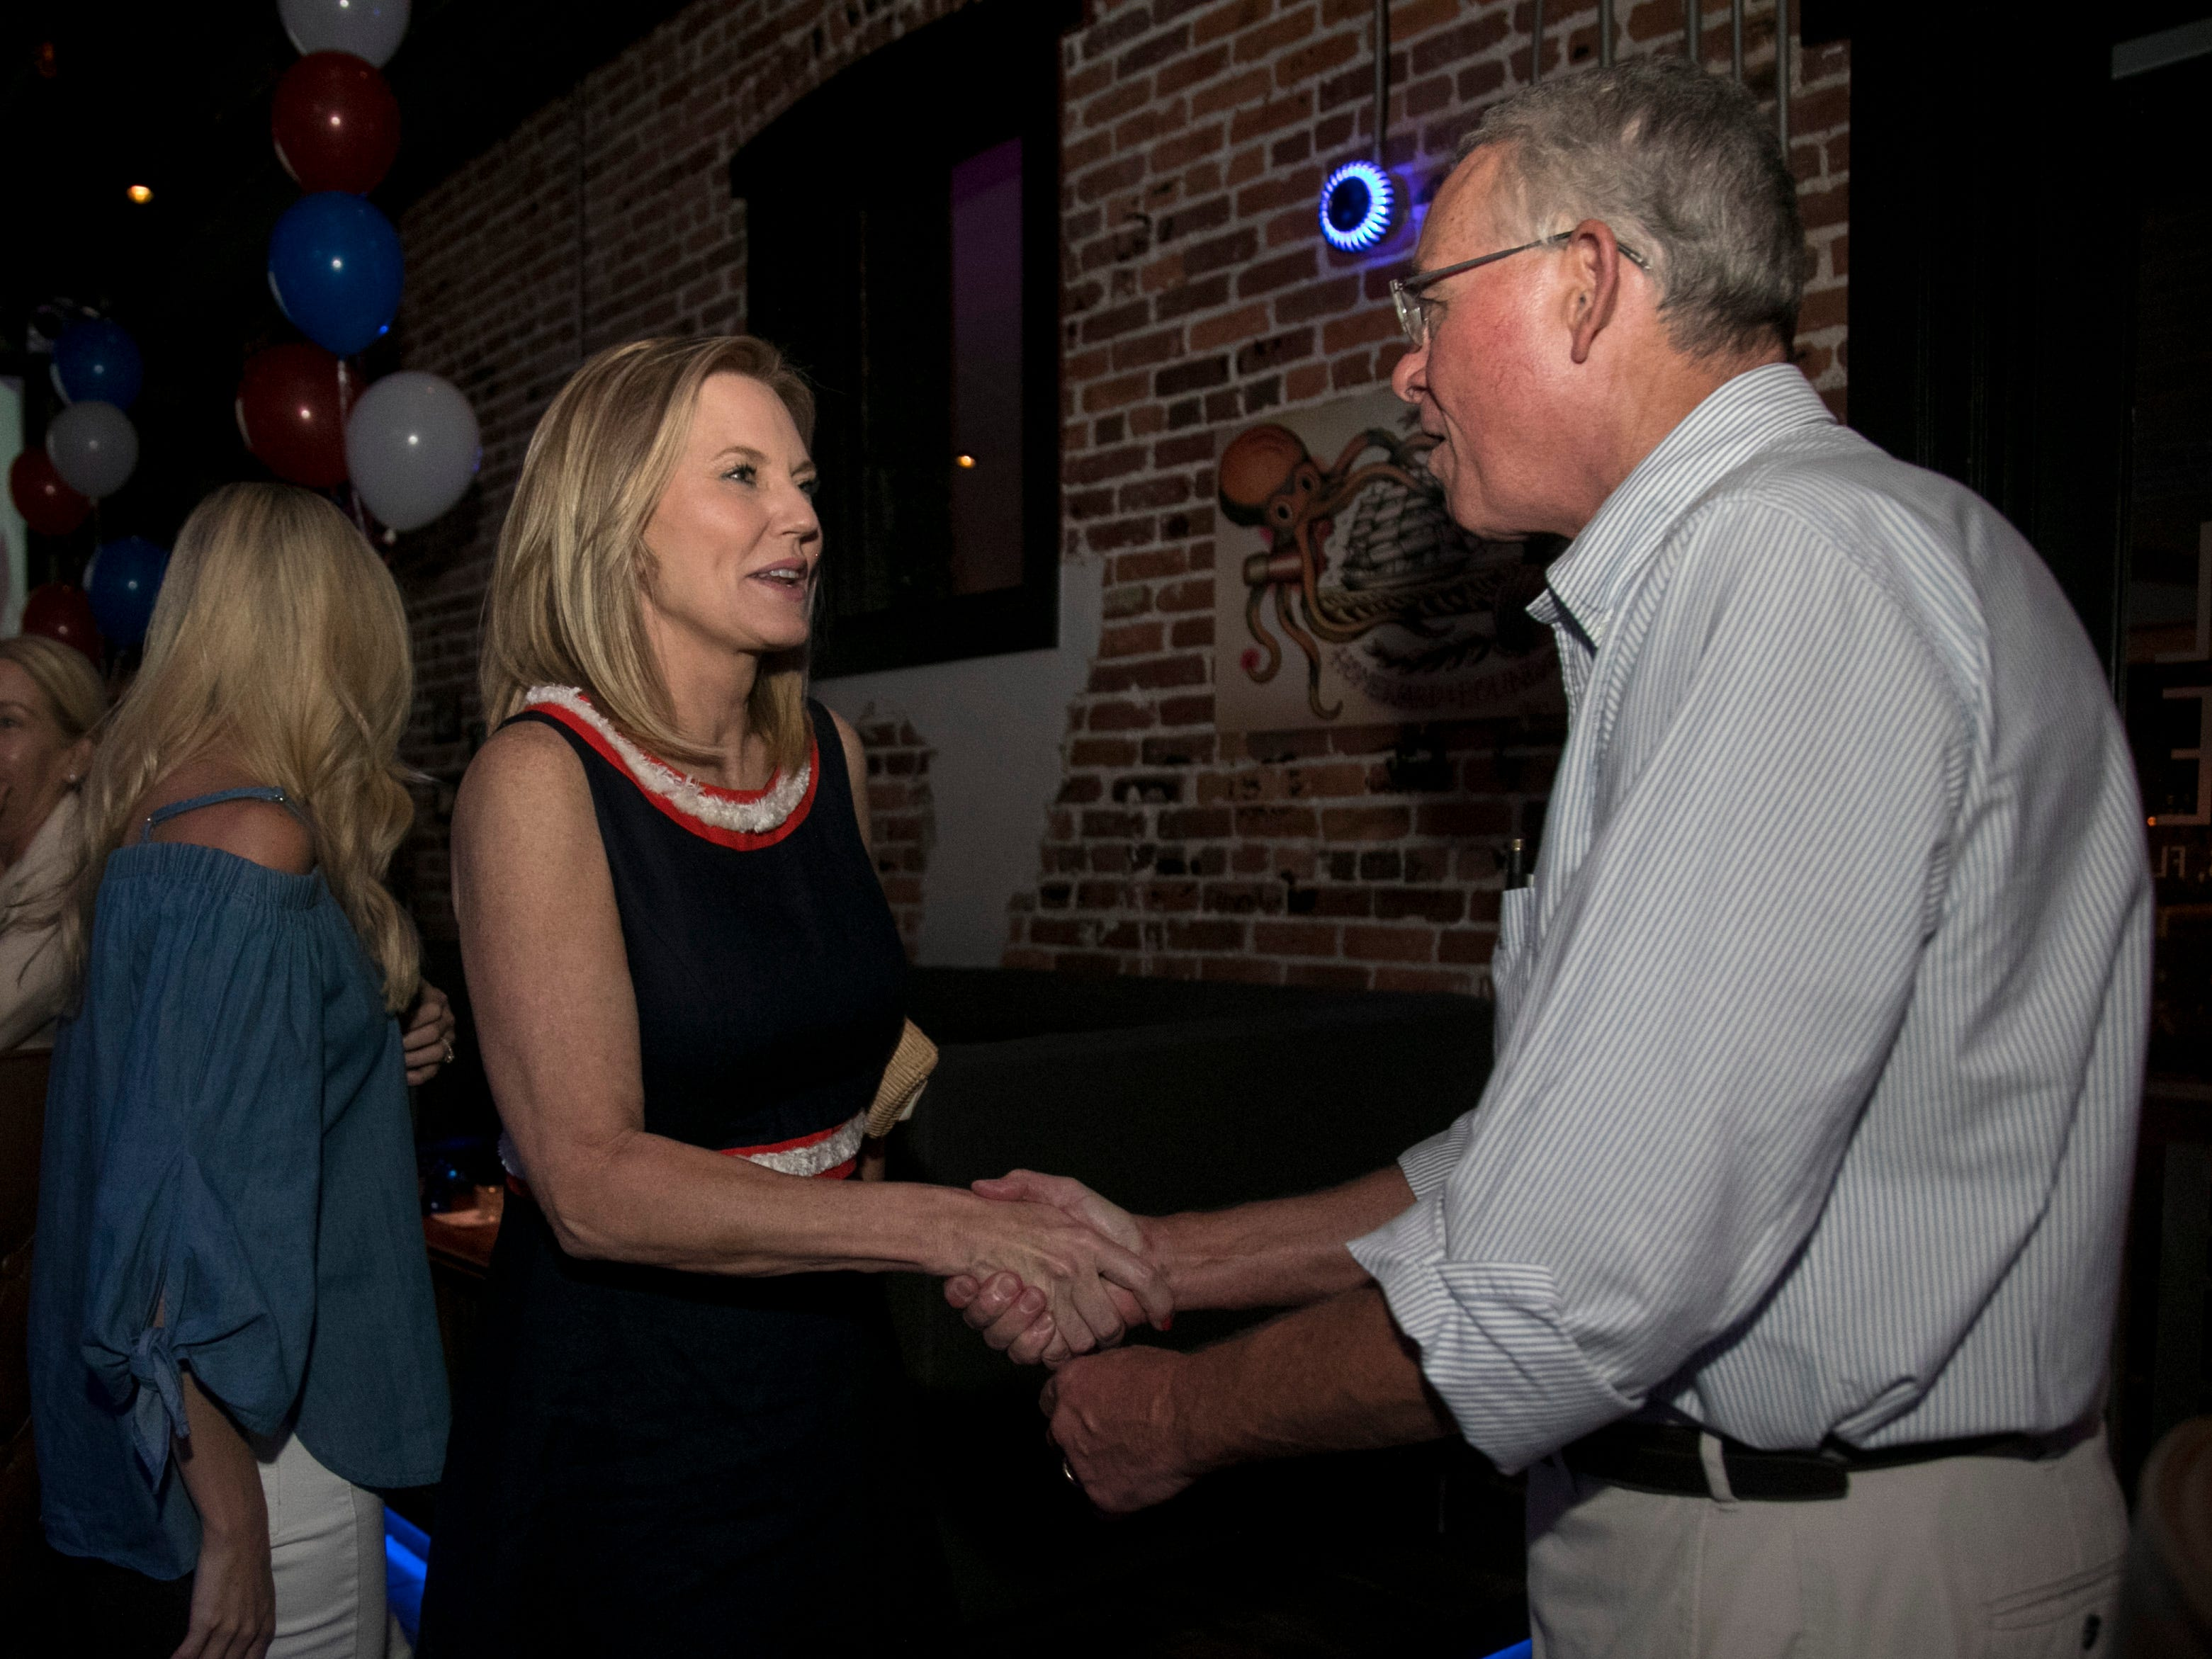 Francis Rooney visits with state Rep. Heather Fitzenhagen on Tuesday night at her election party in Fort Myers.